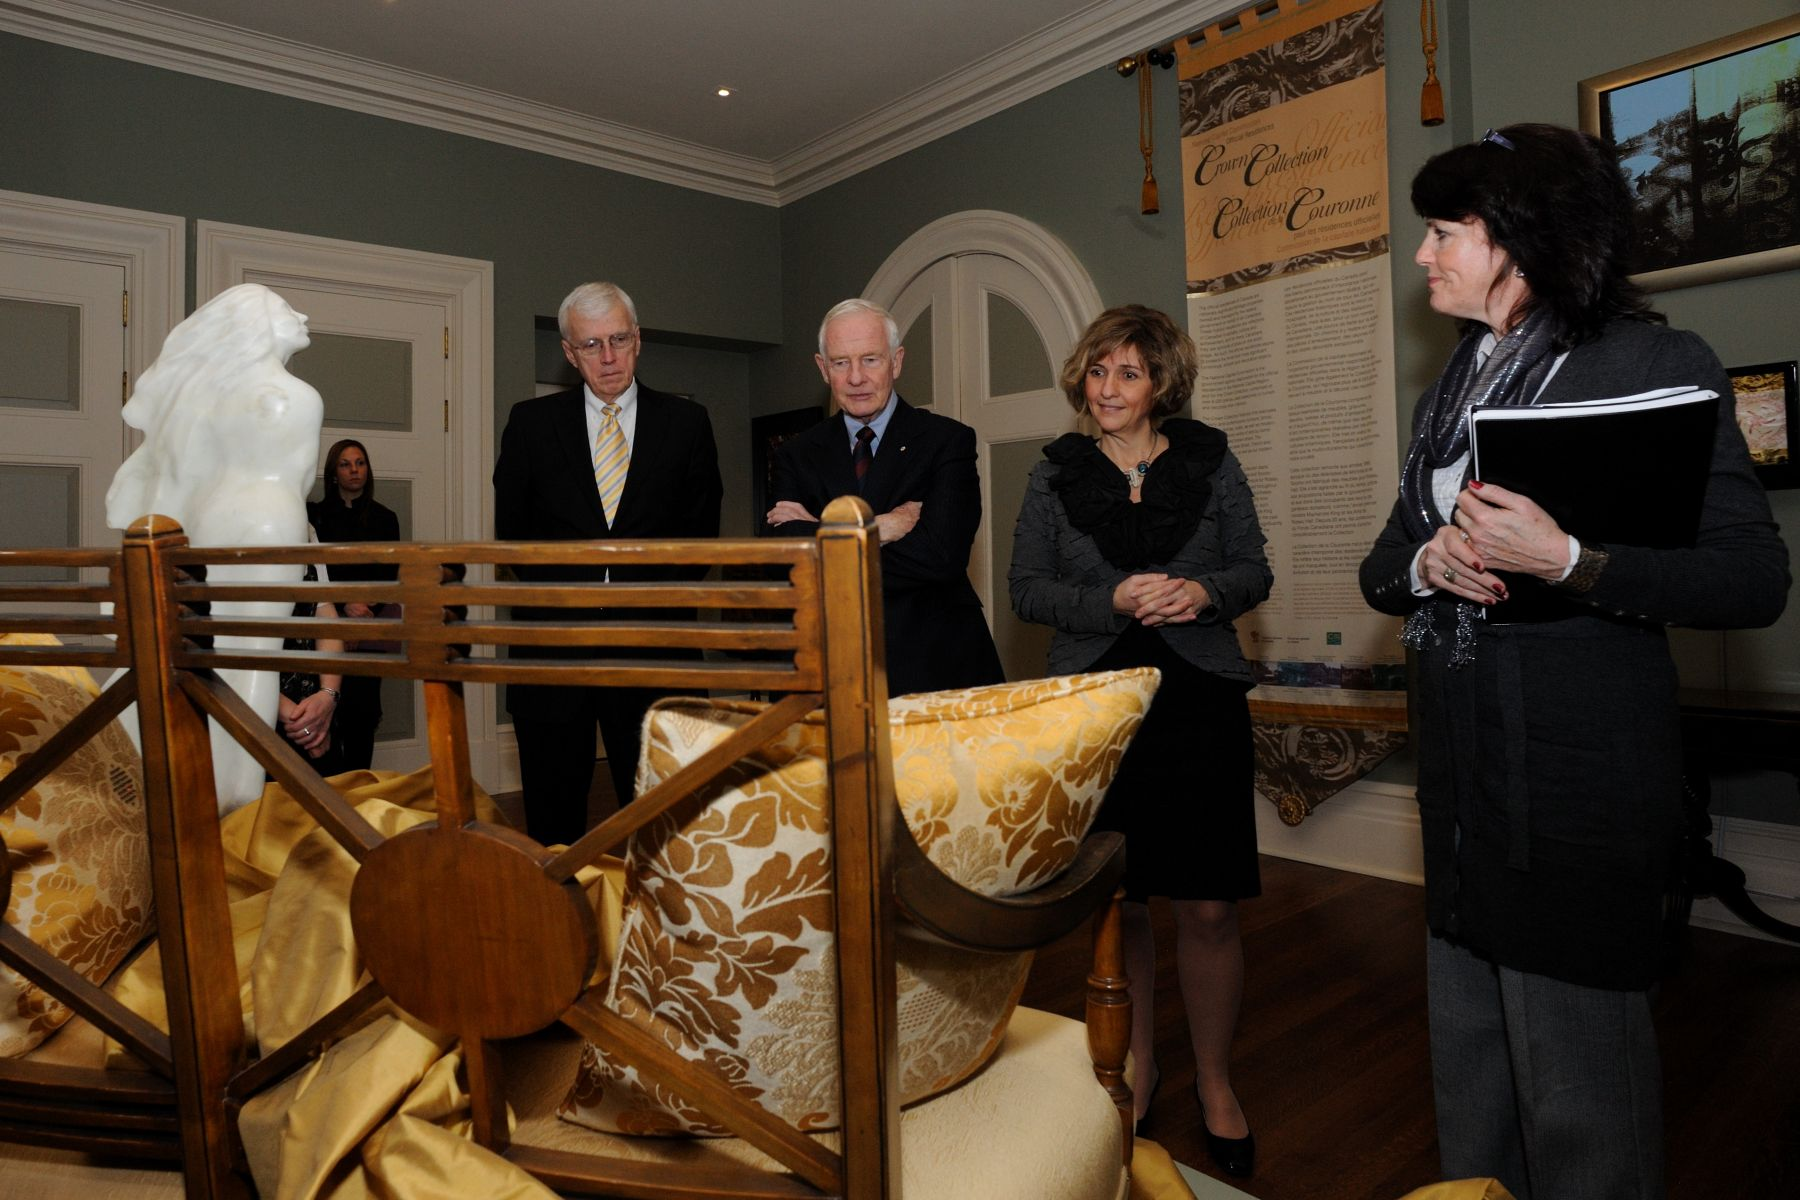 The temporary exhibition is open to the public until March 2011, in the Ambassador's Room, at Rideau Hall. This exhibition is part of the guided tour of Rideau Hall. Please call 1-866-842-4422 for reservations.